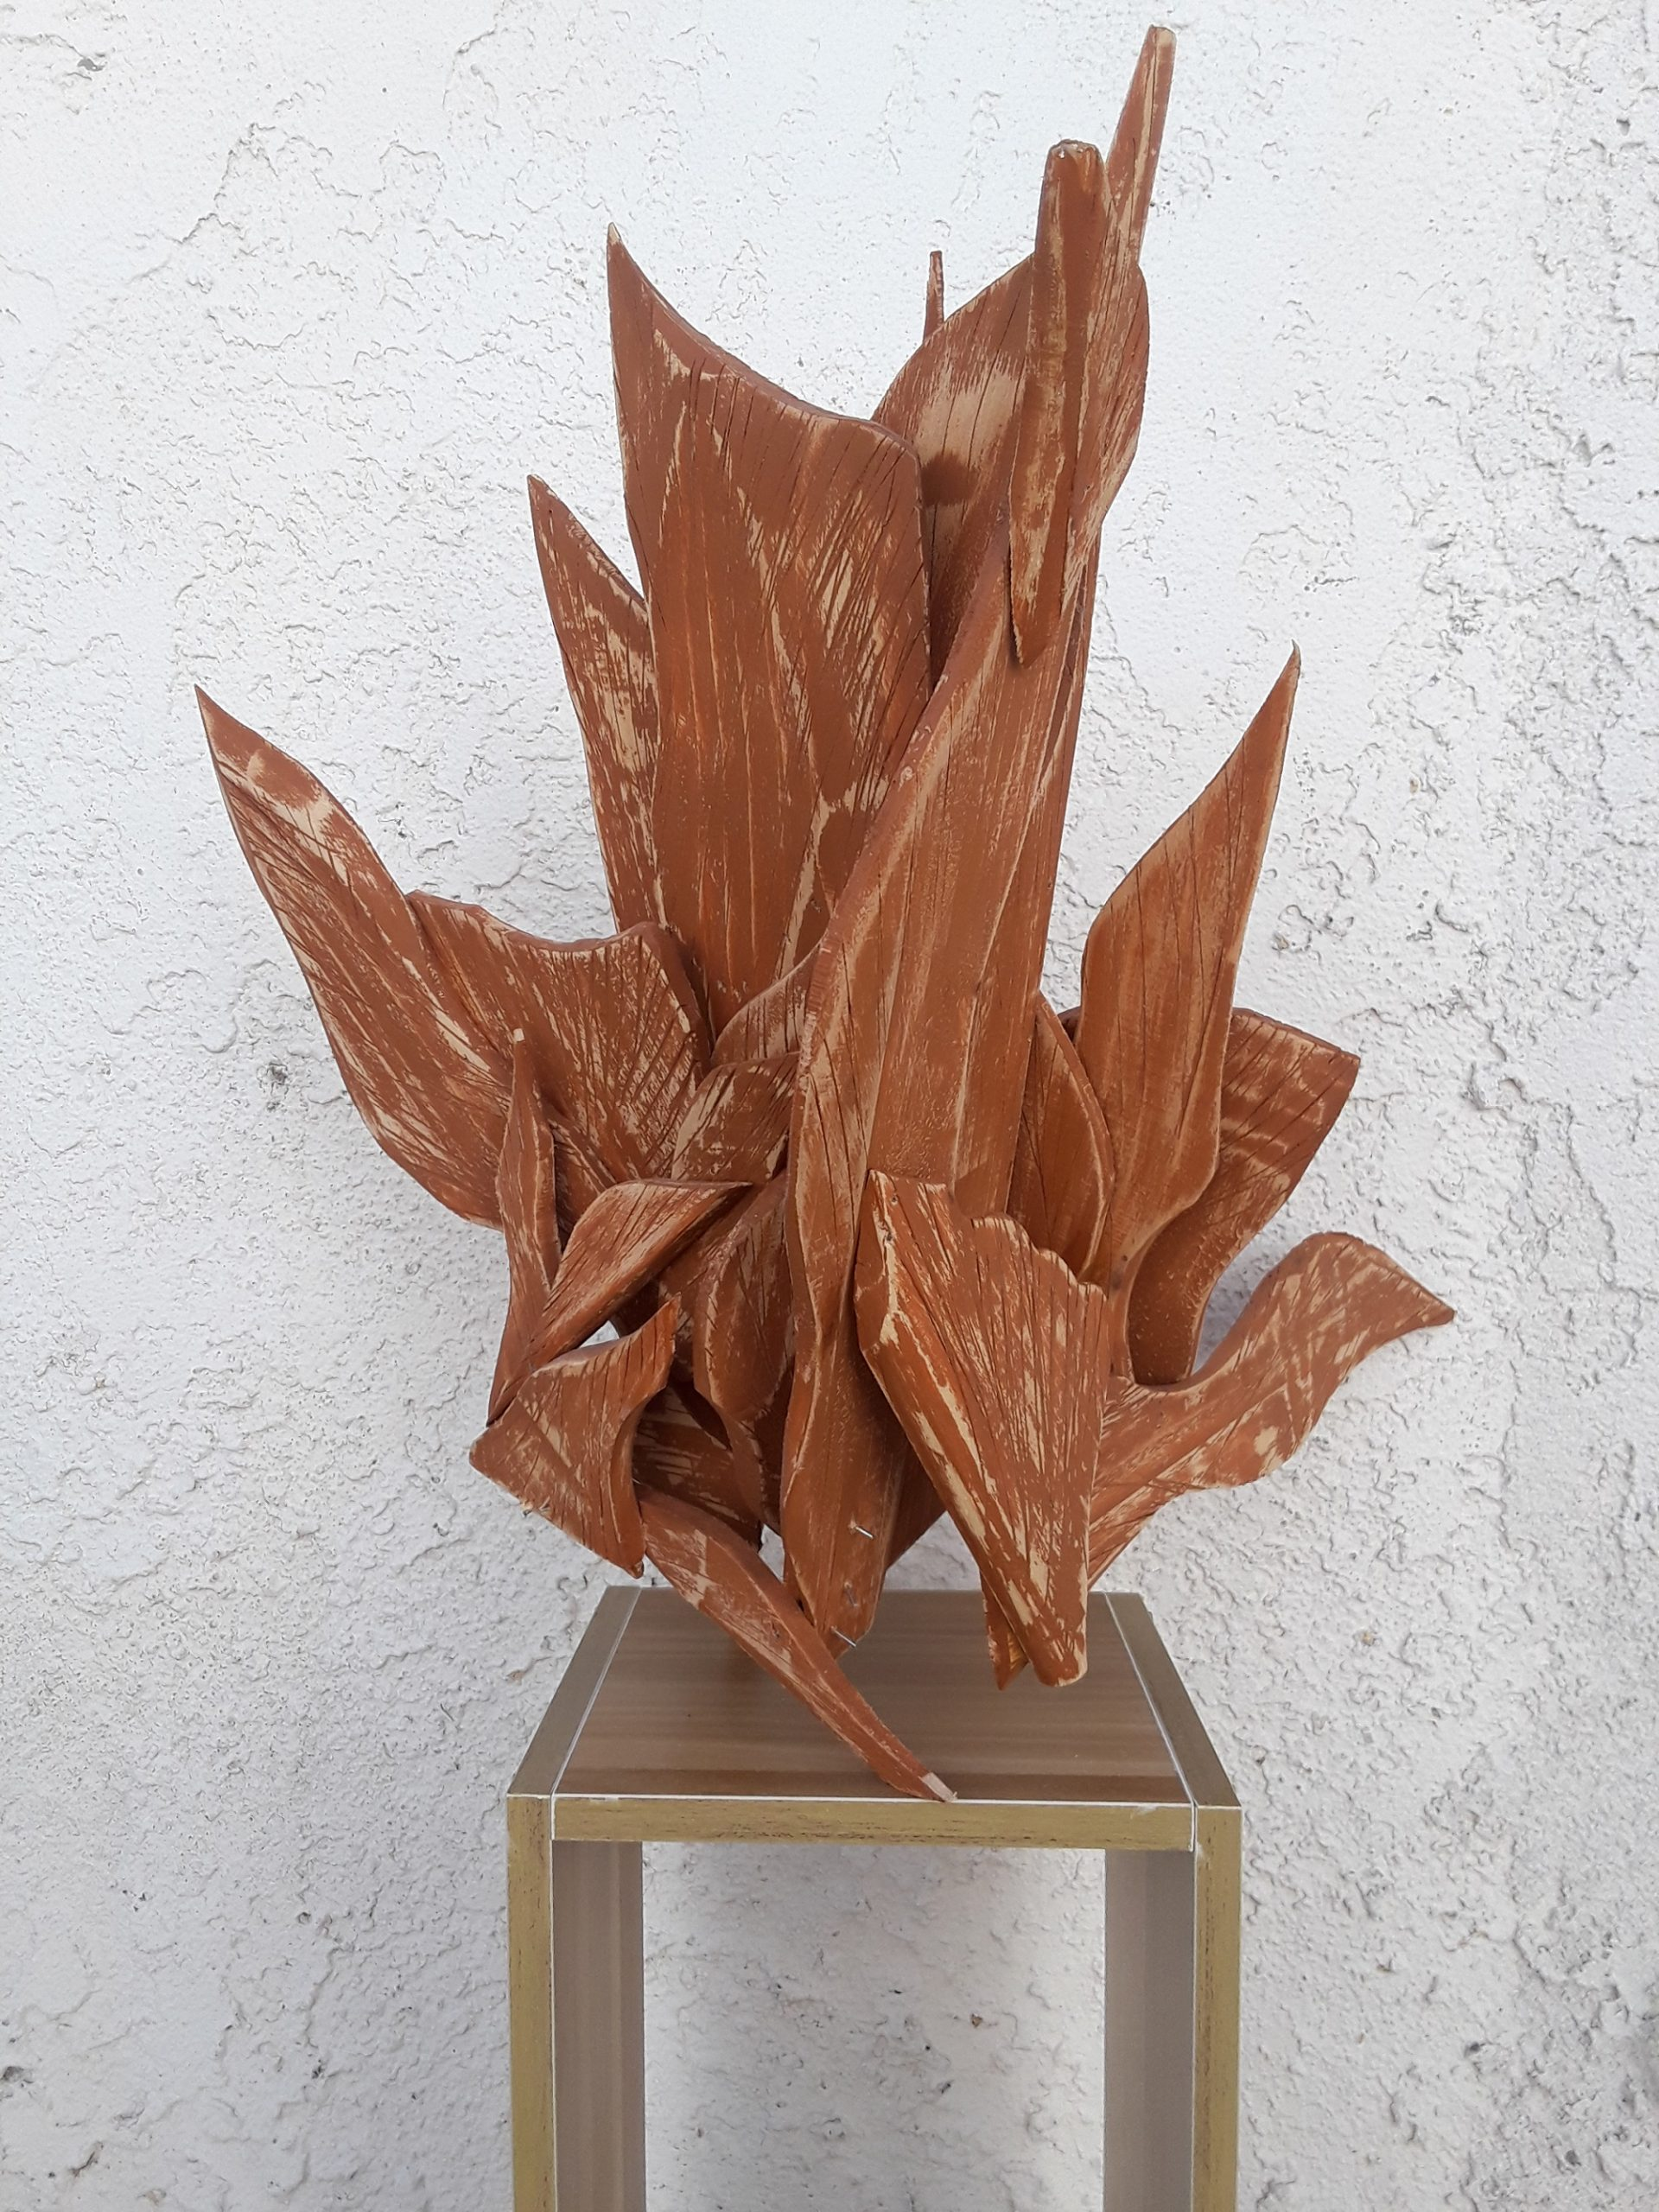 Different shapes of wood put together to create an abstract shape.